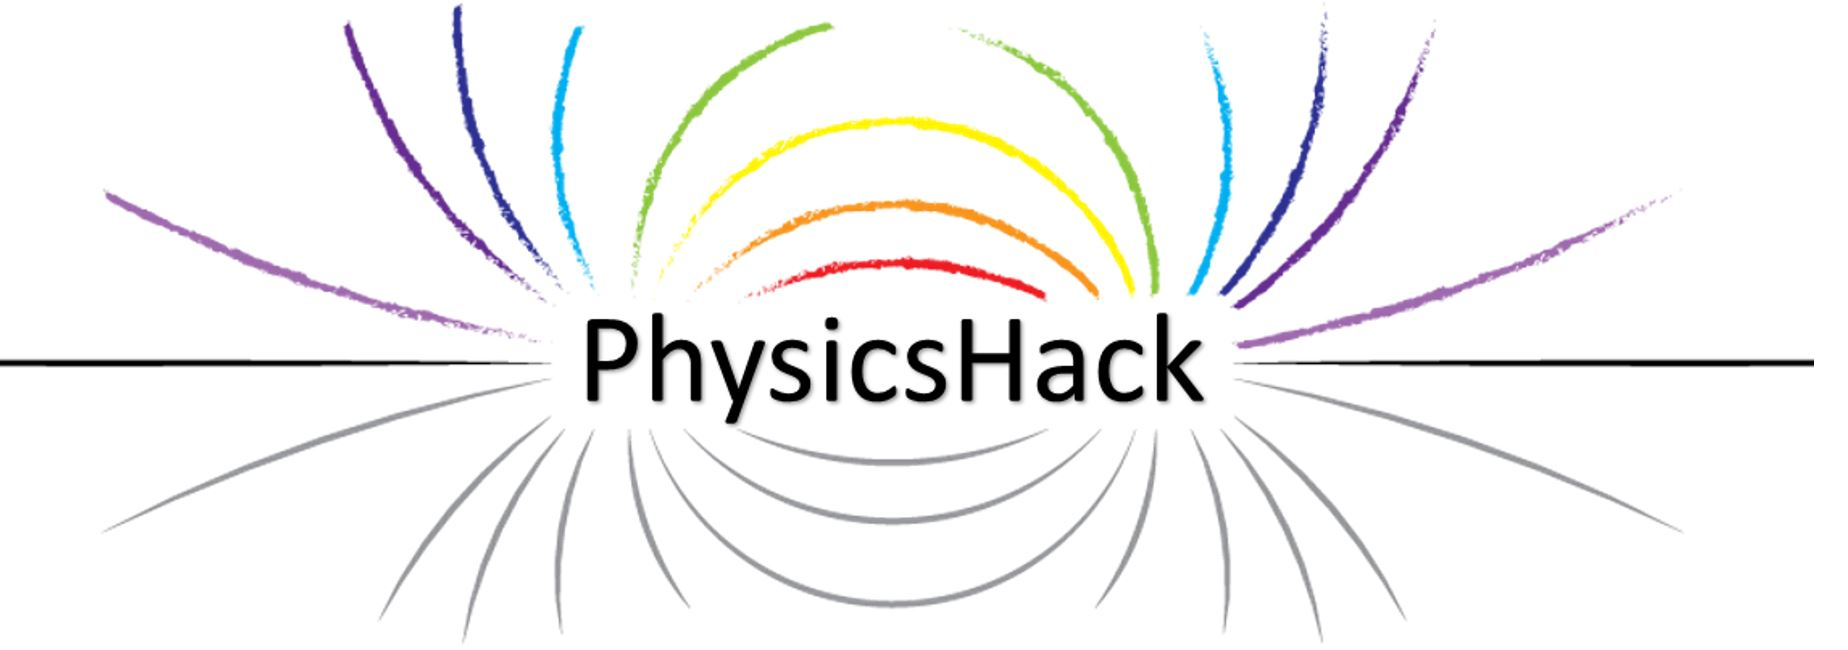 PhysicsHack